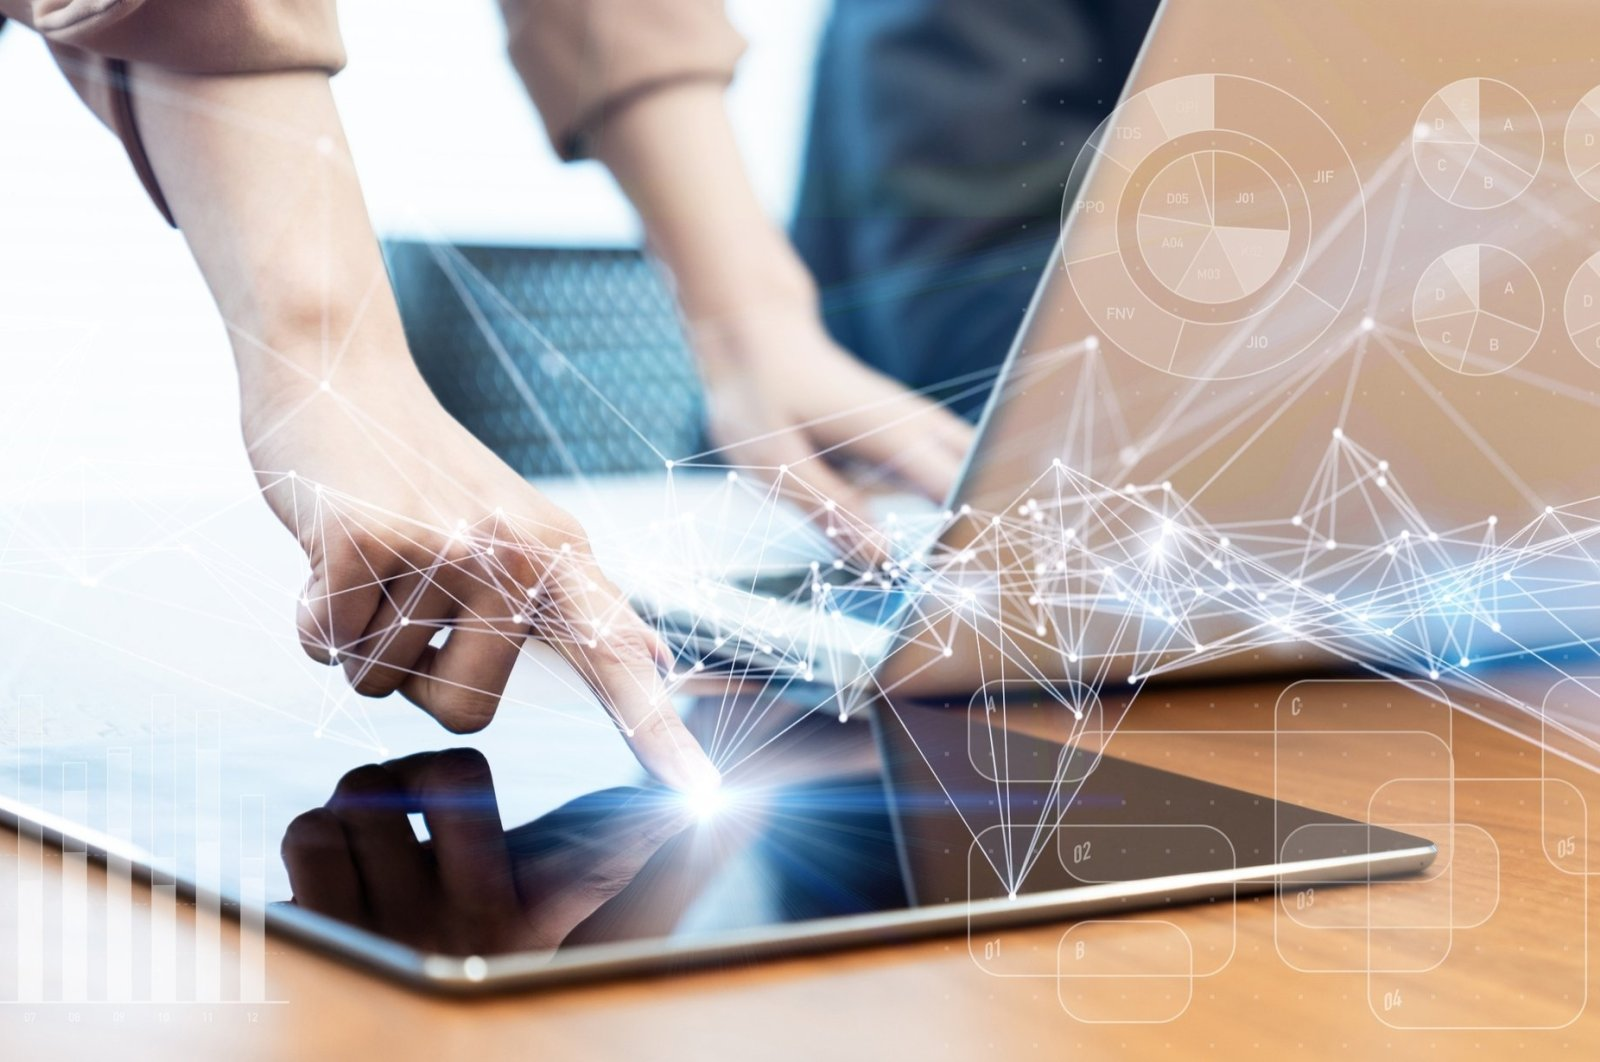 The common view of the investors is that more than 10 startups from Turkey will reach TL 1 billion in valuation in the near future. (iStock Photo)